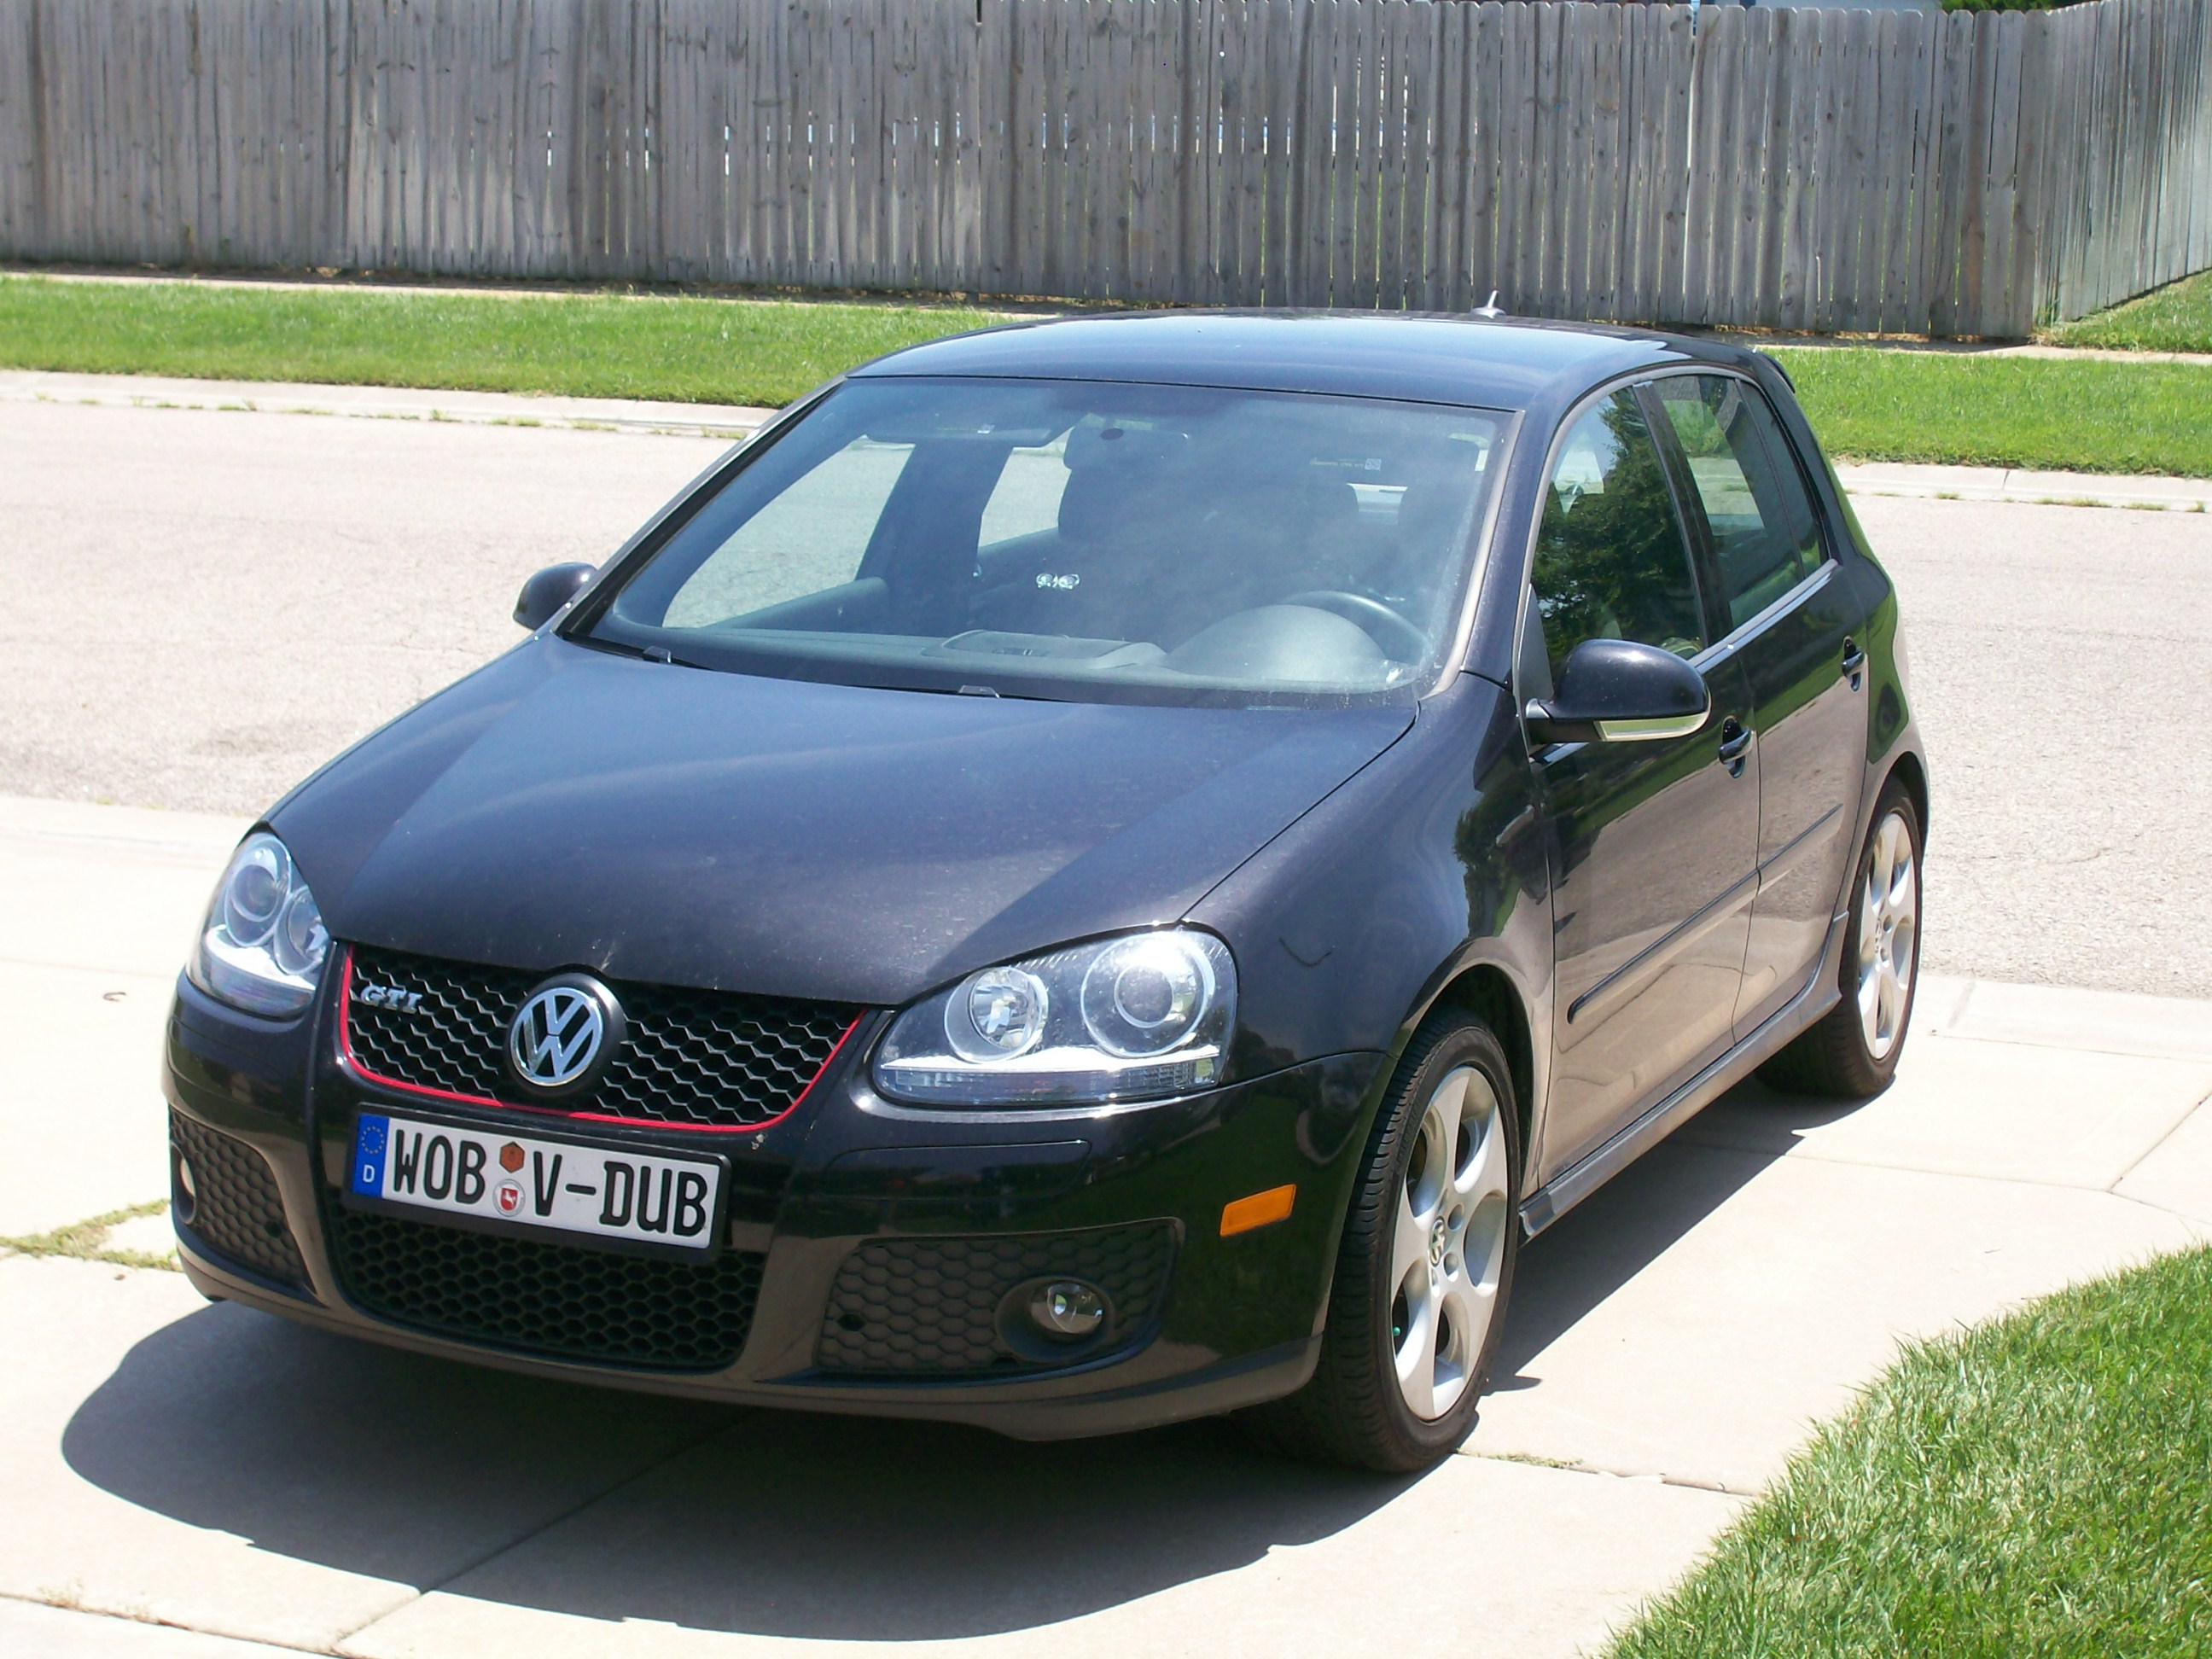 Vw Gti 0 60 2008 Volkswagen Dsg 1 4 Mile Trap Sds